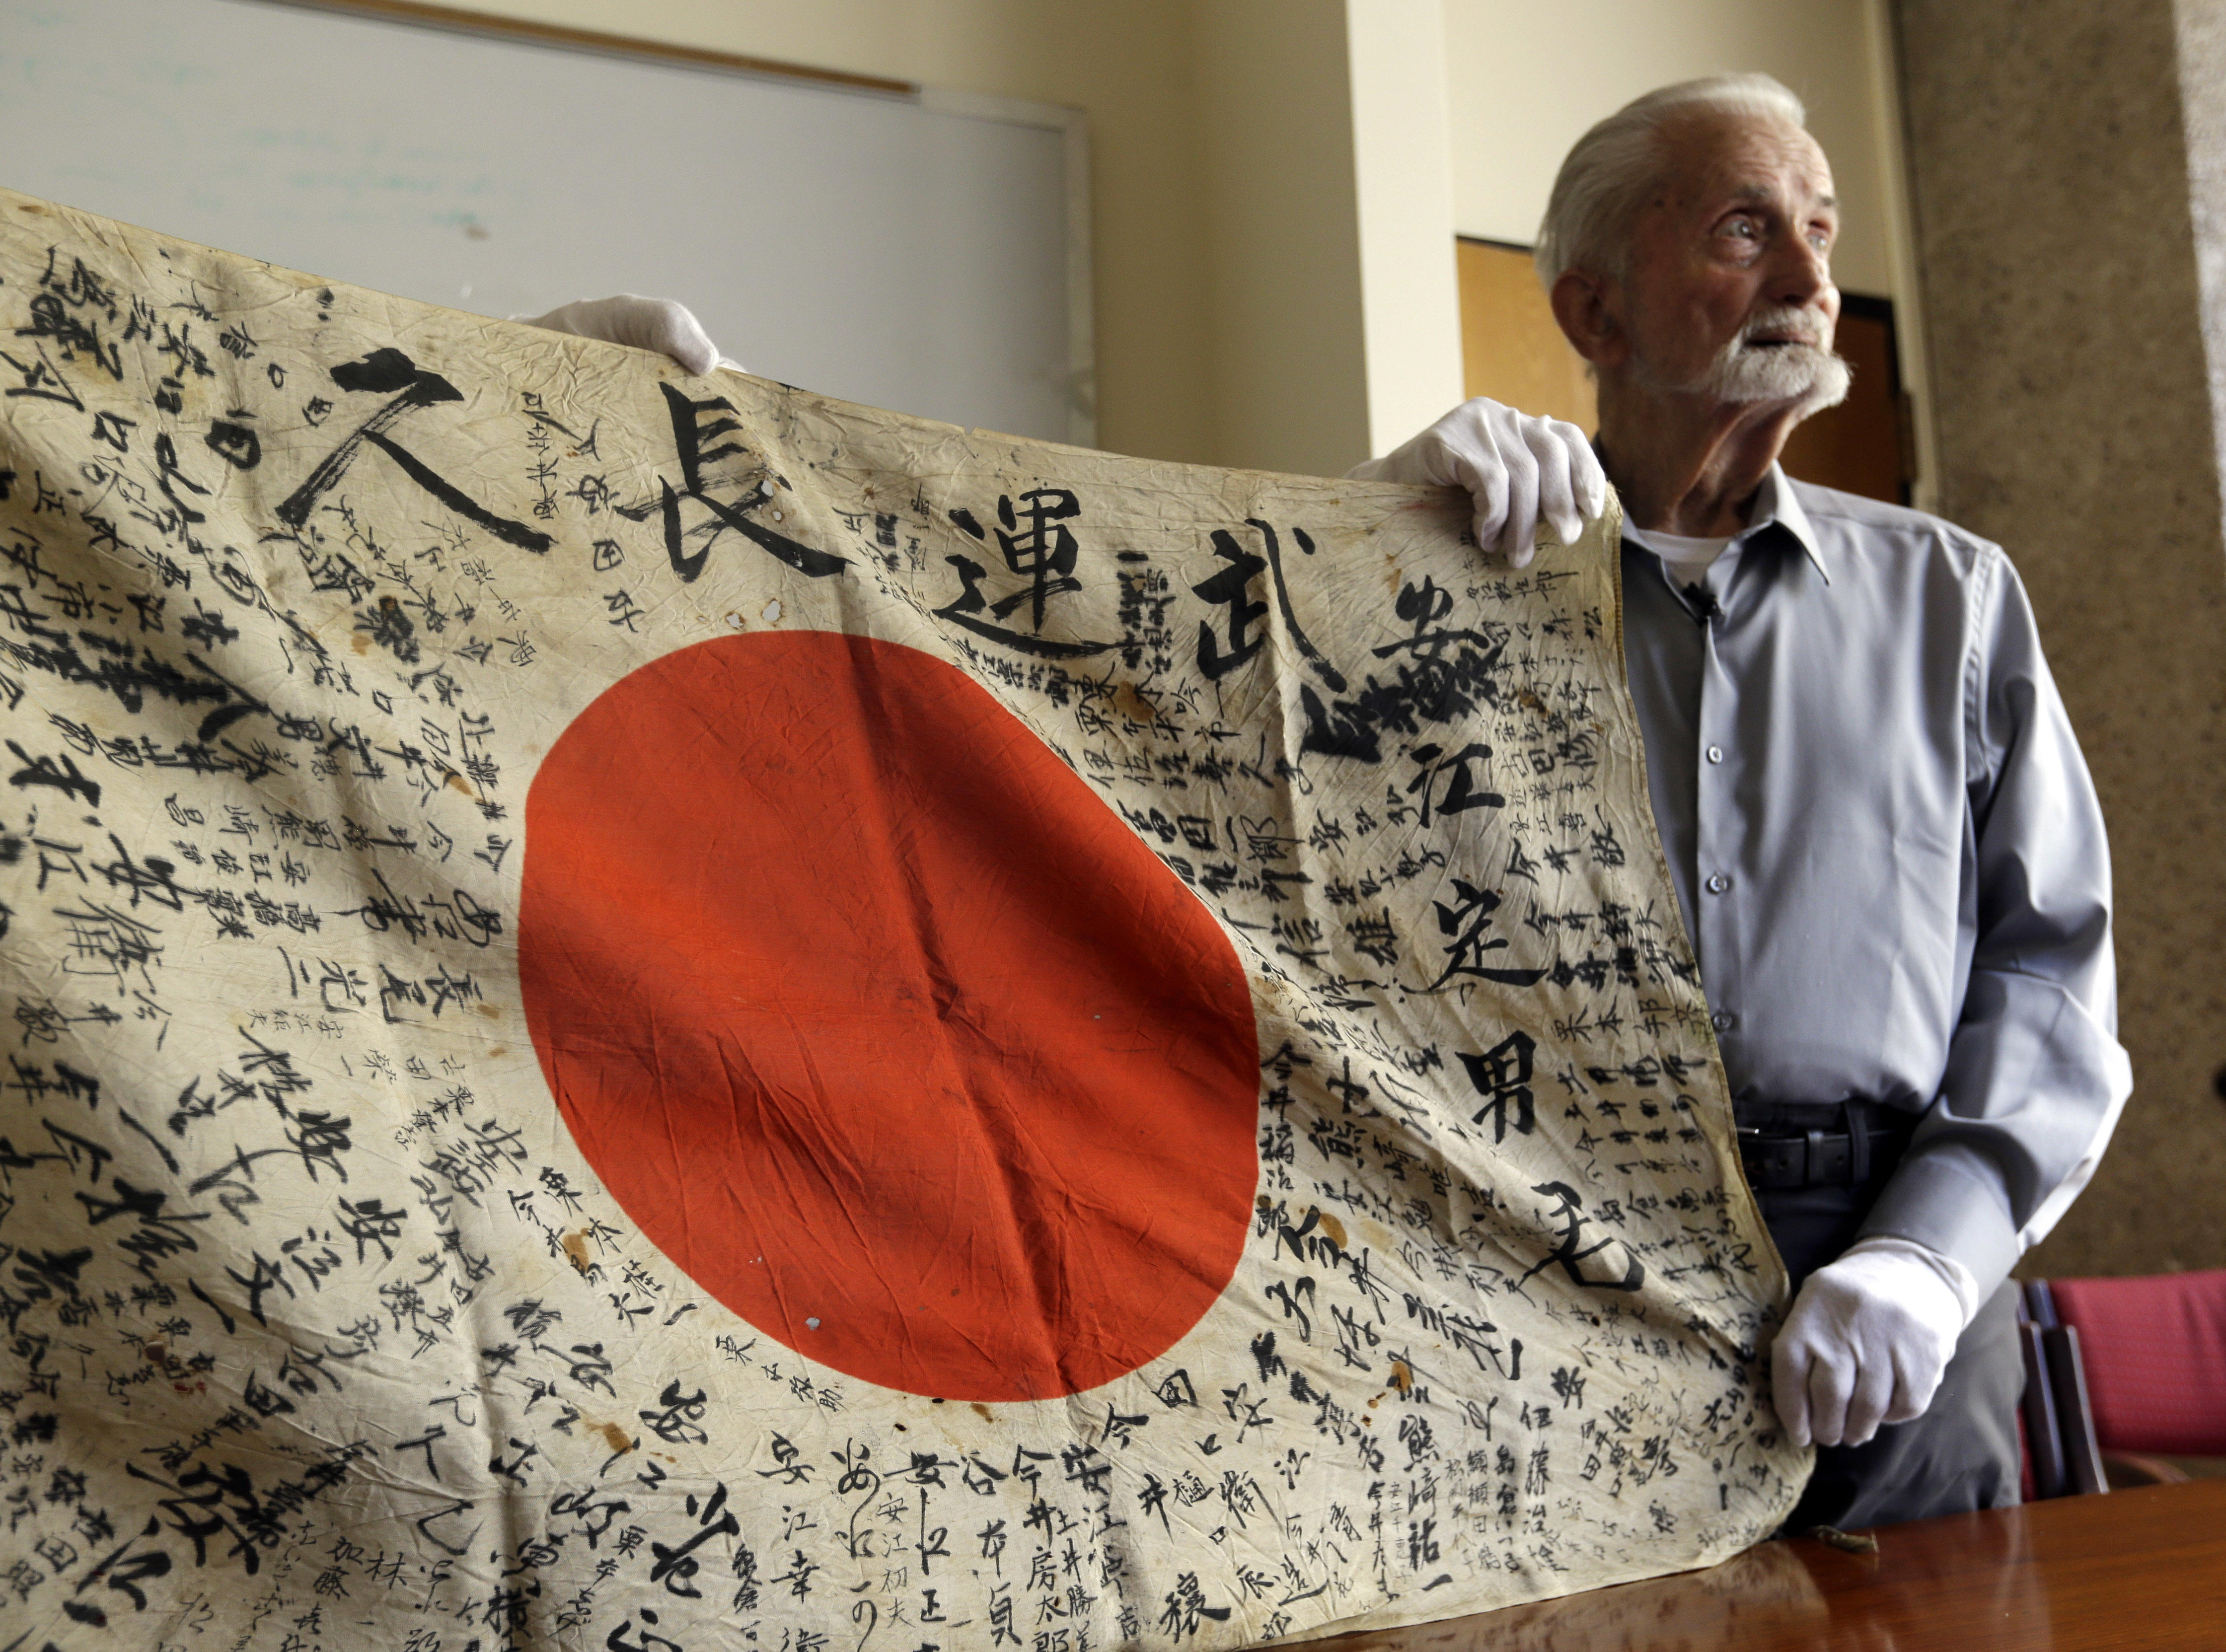 U S Wwii Vet Bringing Back Flag He Took From Dead Japanese Sol R